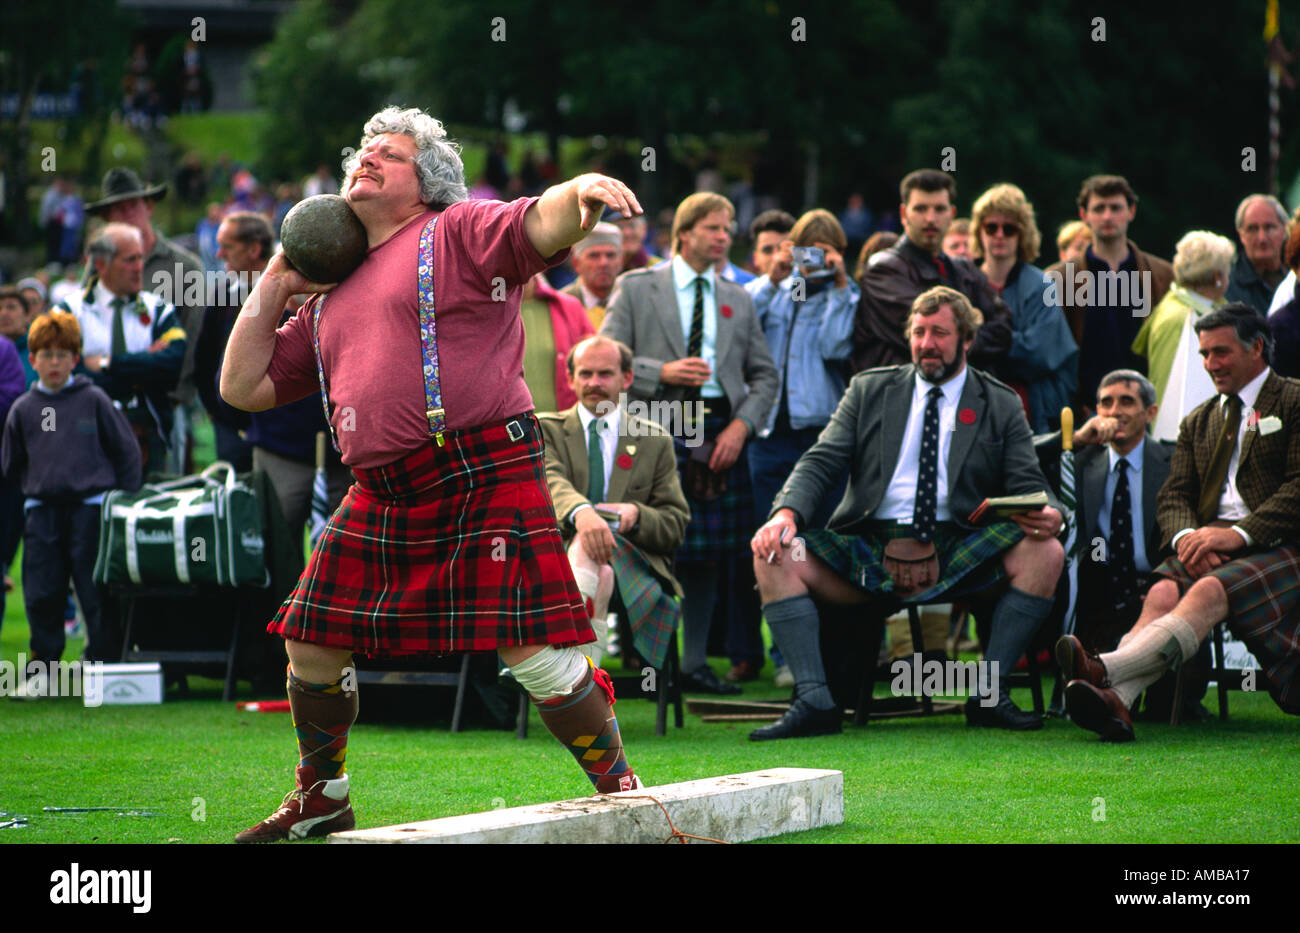 Top 10 highland games